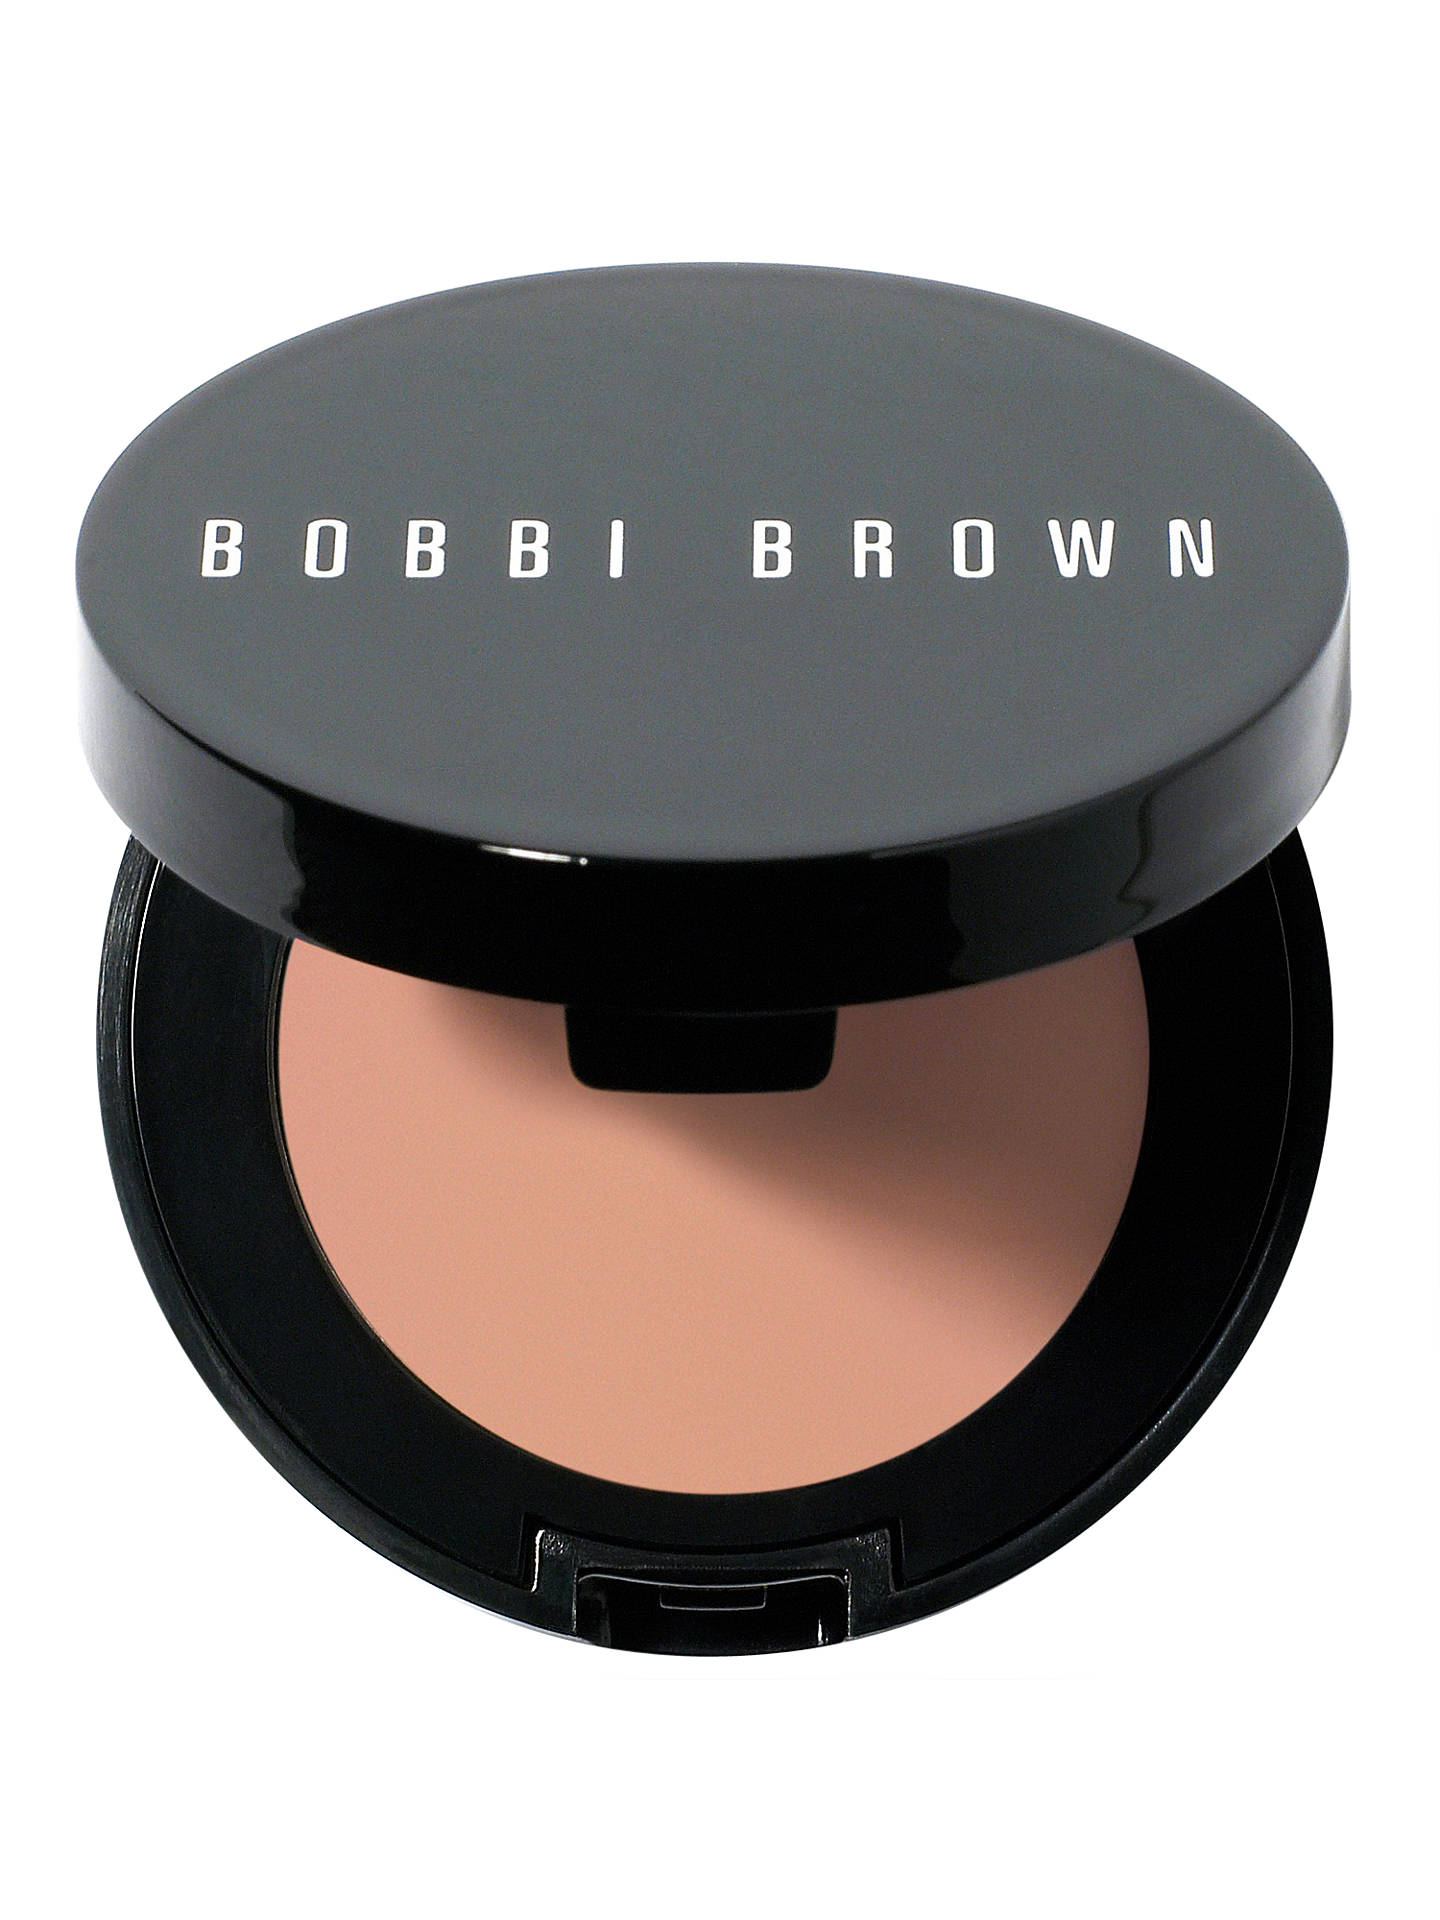 Image result for bobbi brown corrector""